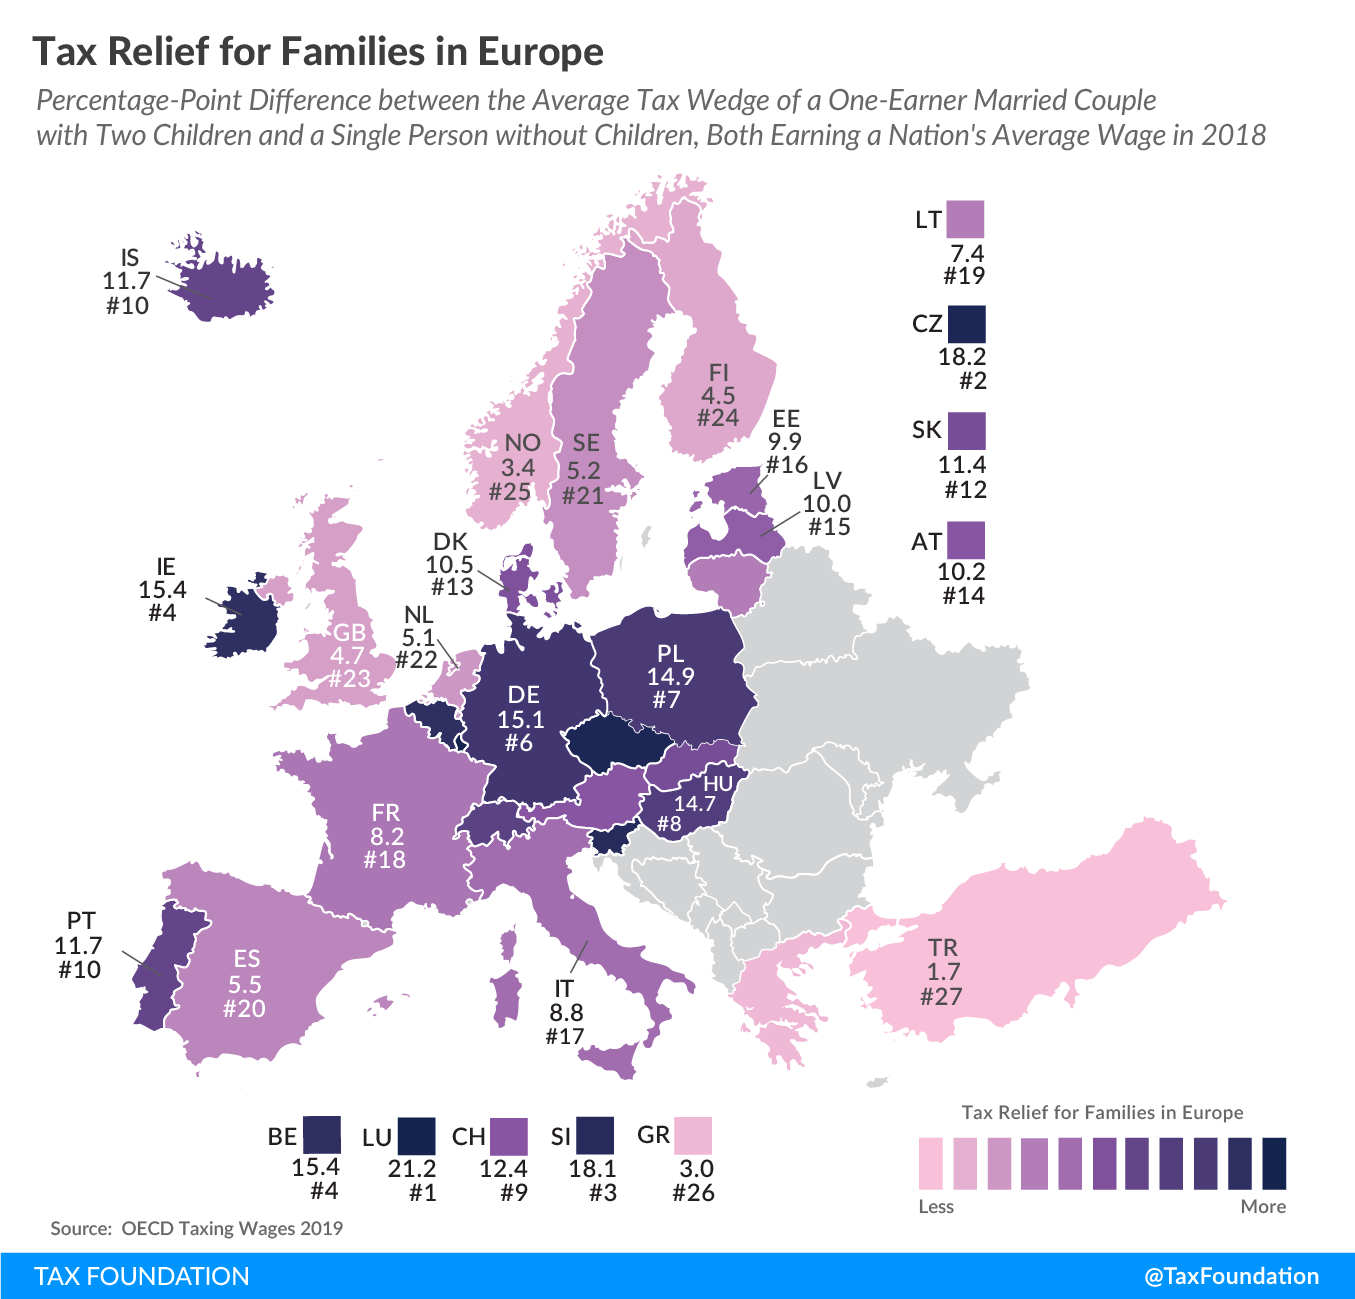 Tax Relief for families, family tax relief in Europe